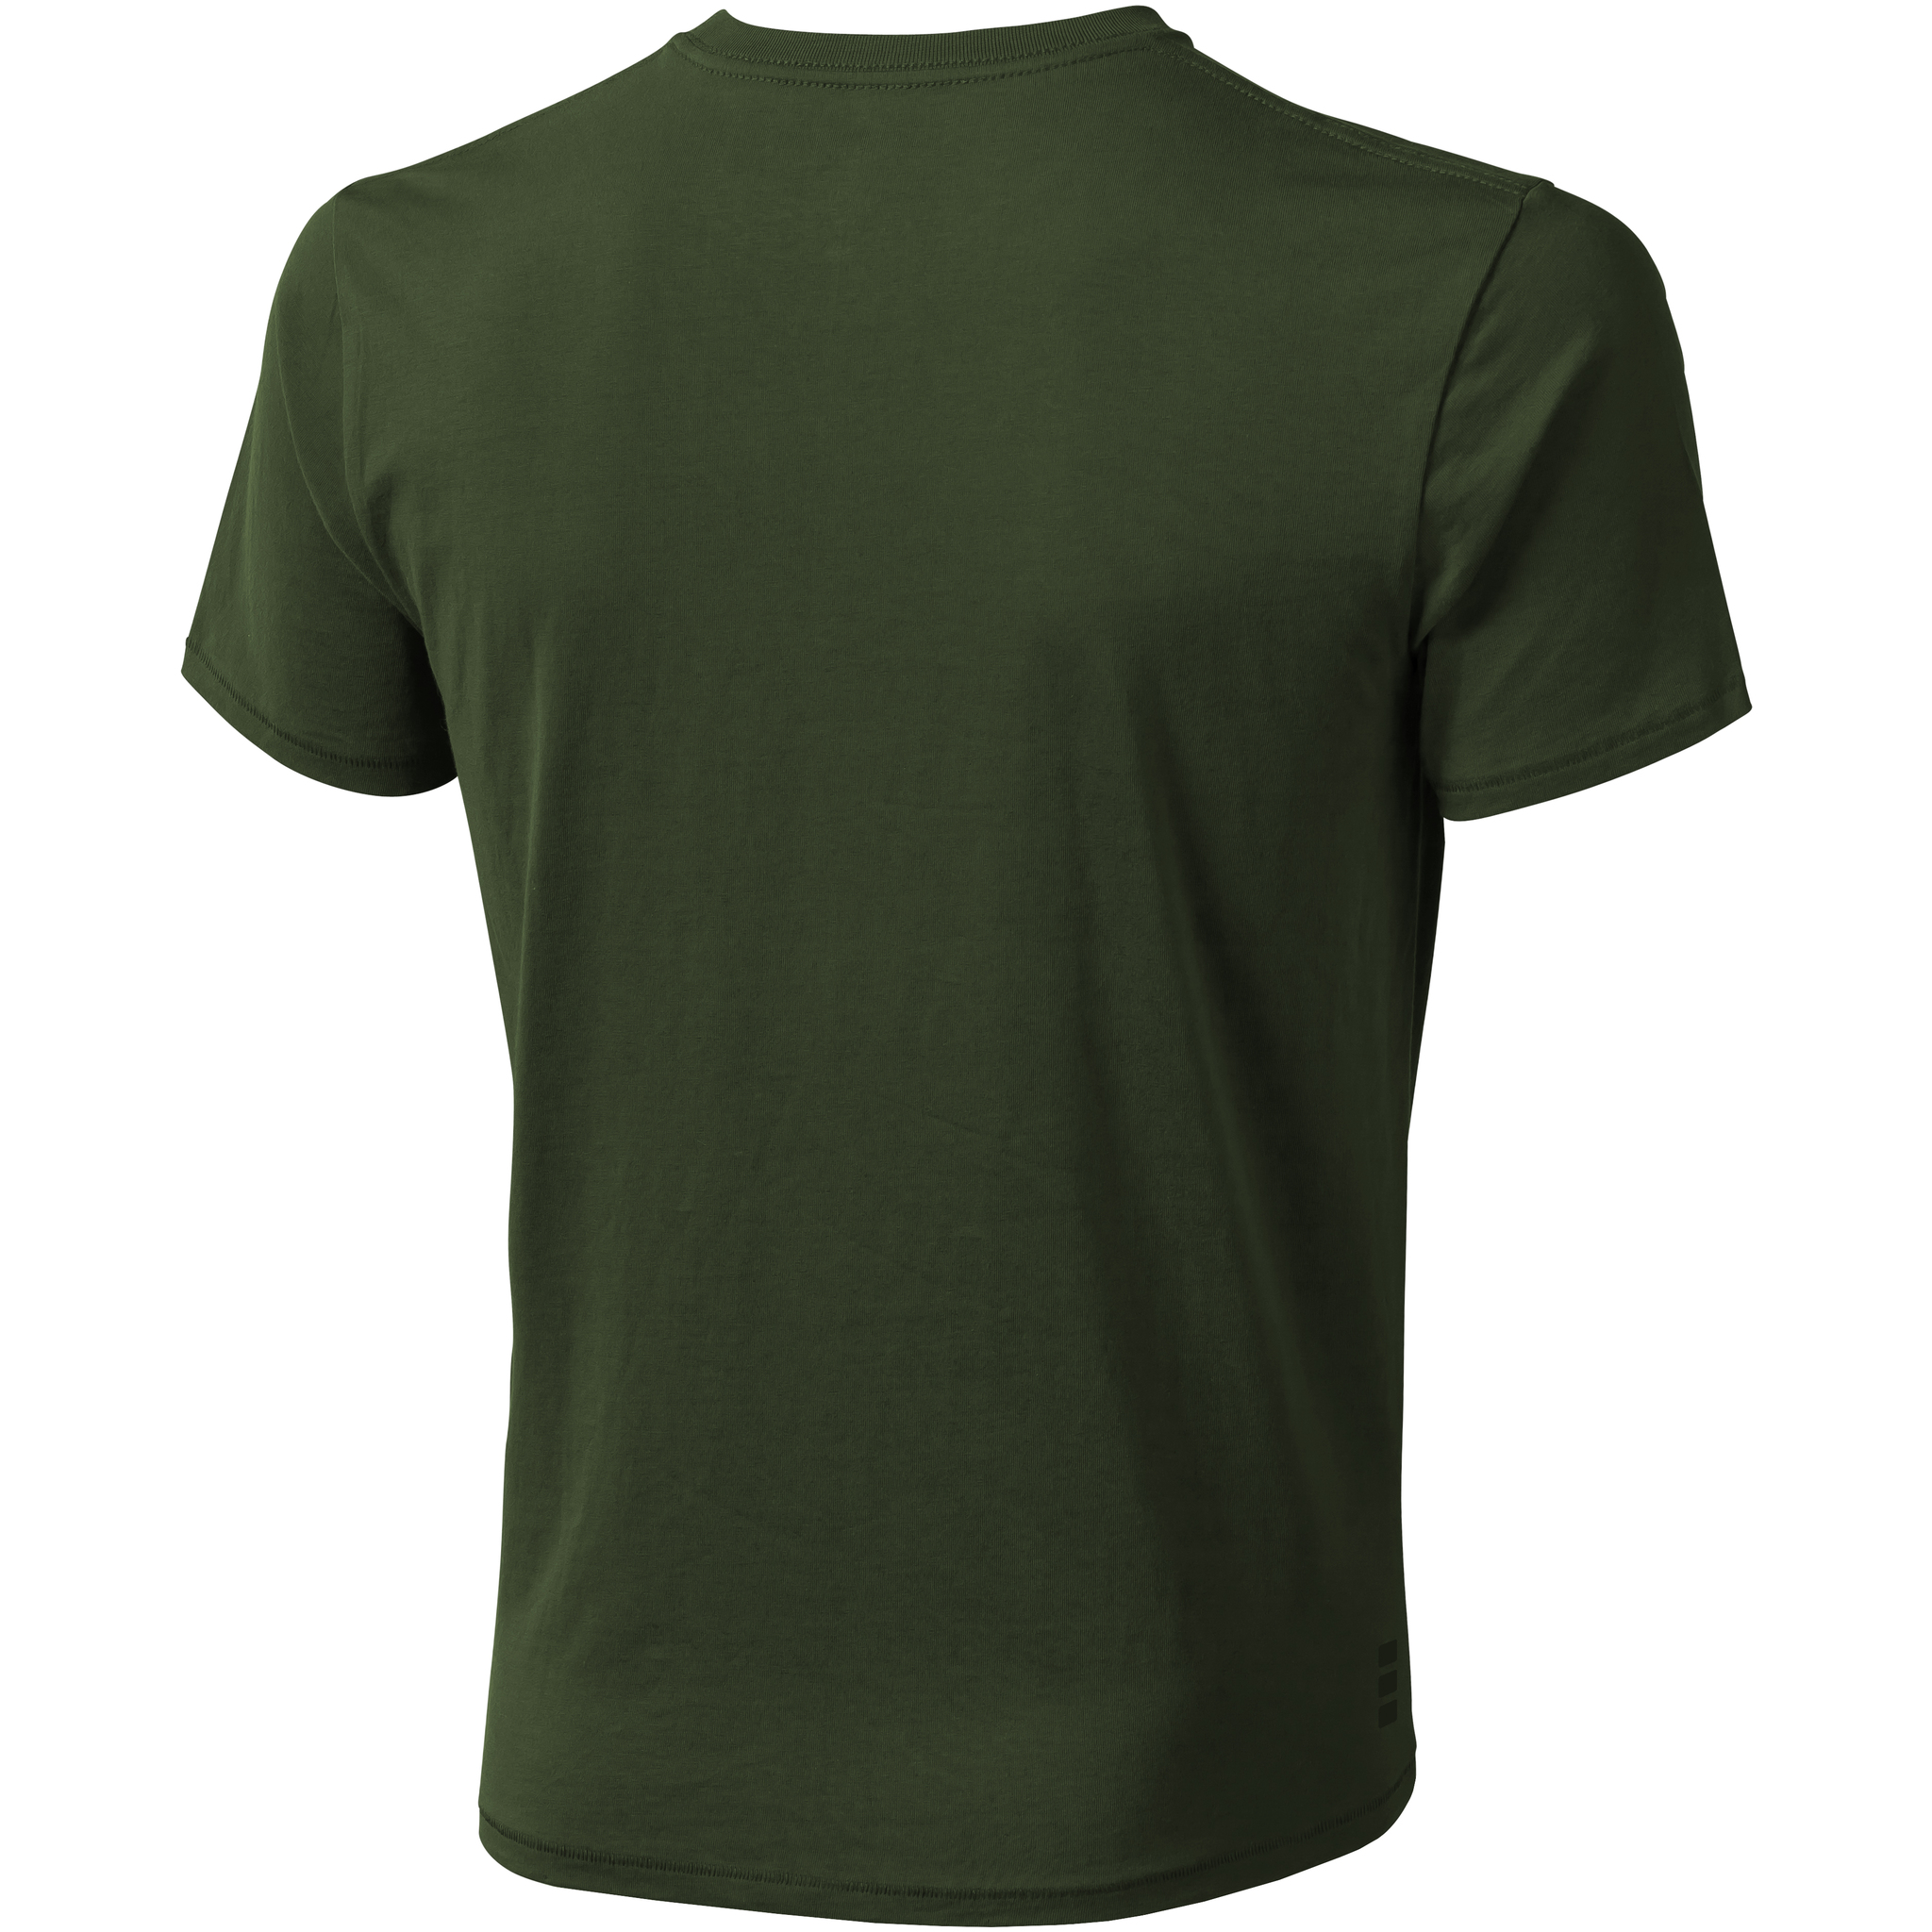 PF1807 Elevate Mens Nanaimo Short Sleeve T-Shirt